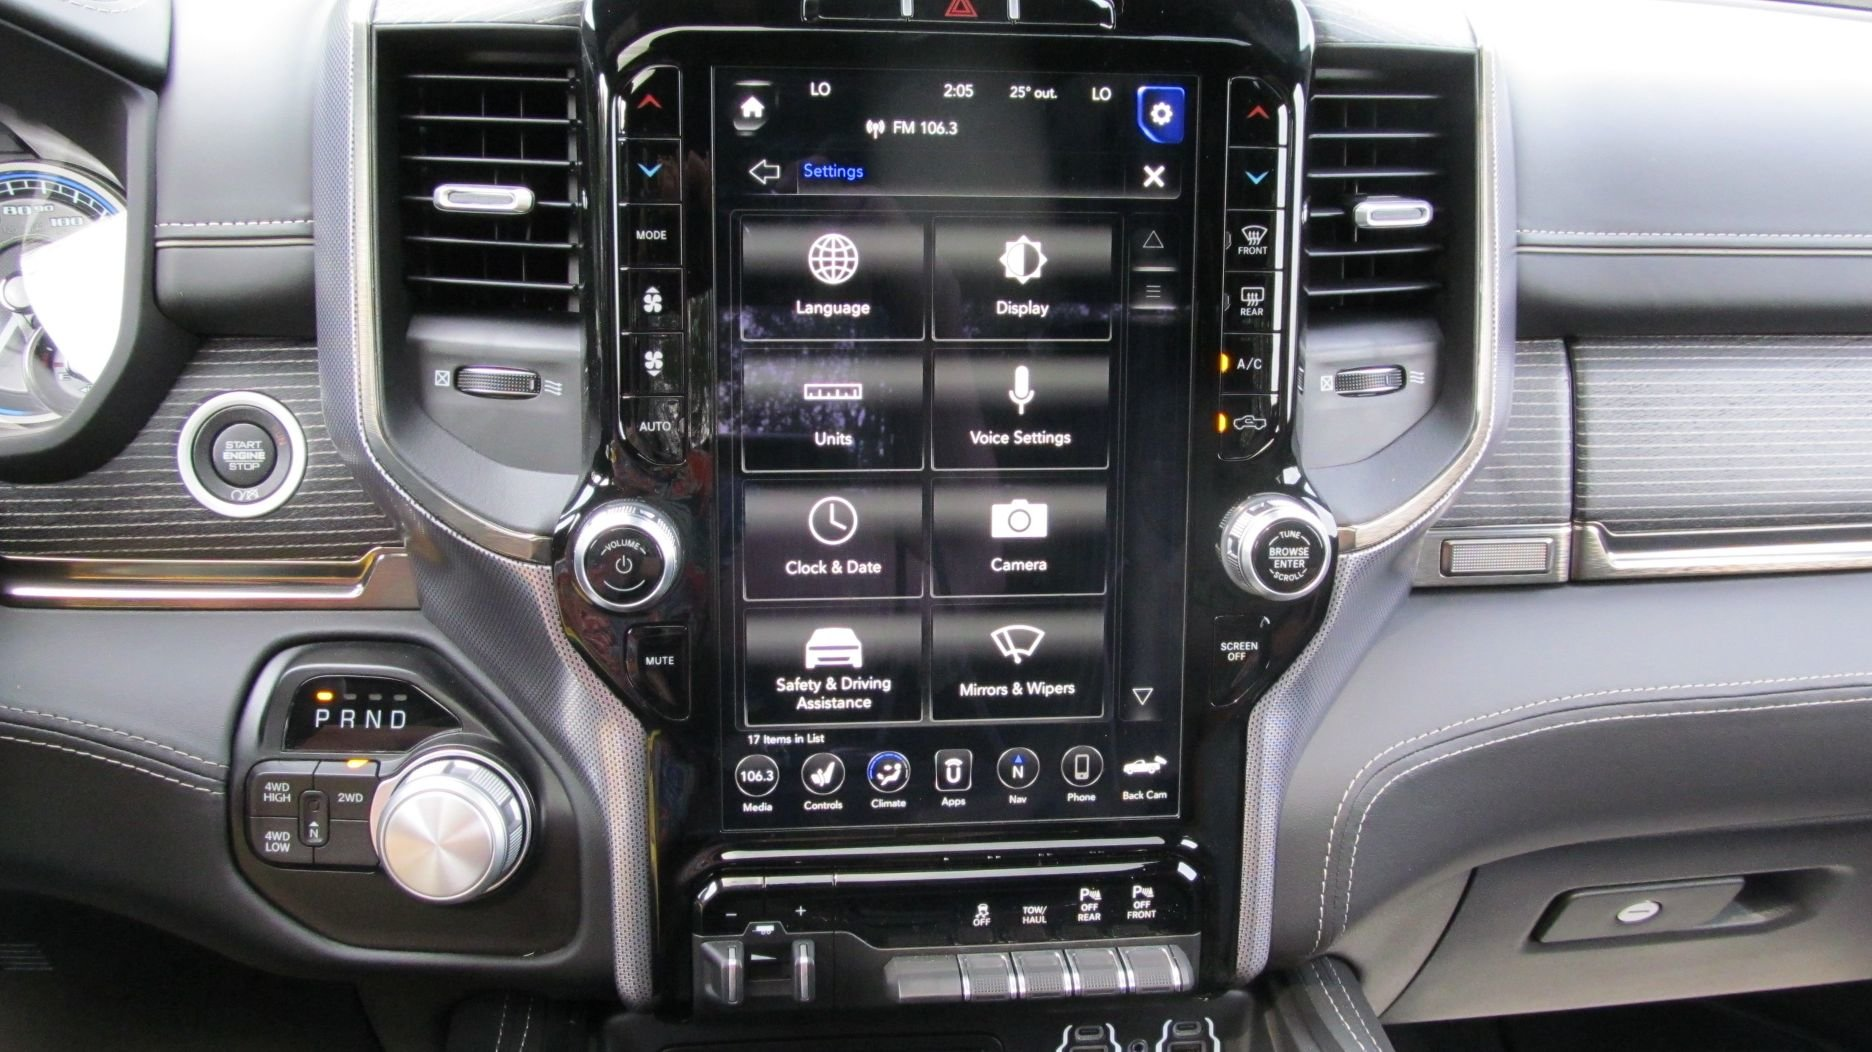 2020 Dodge RAM 2500 6.4L V8 LIMITED 4x4 Crew Cab For Sale (picture 6 of 6)